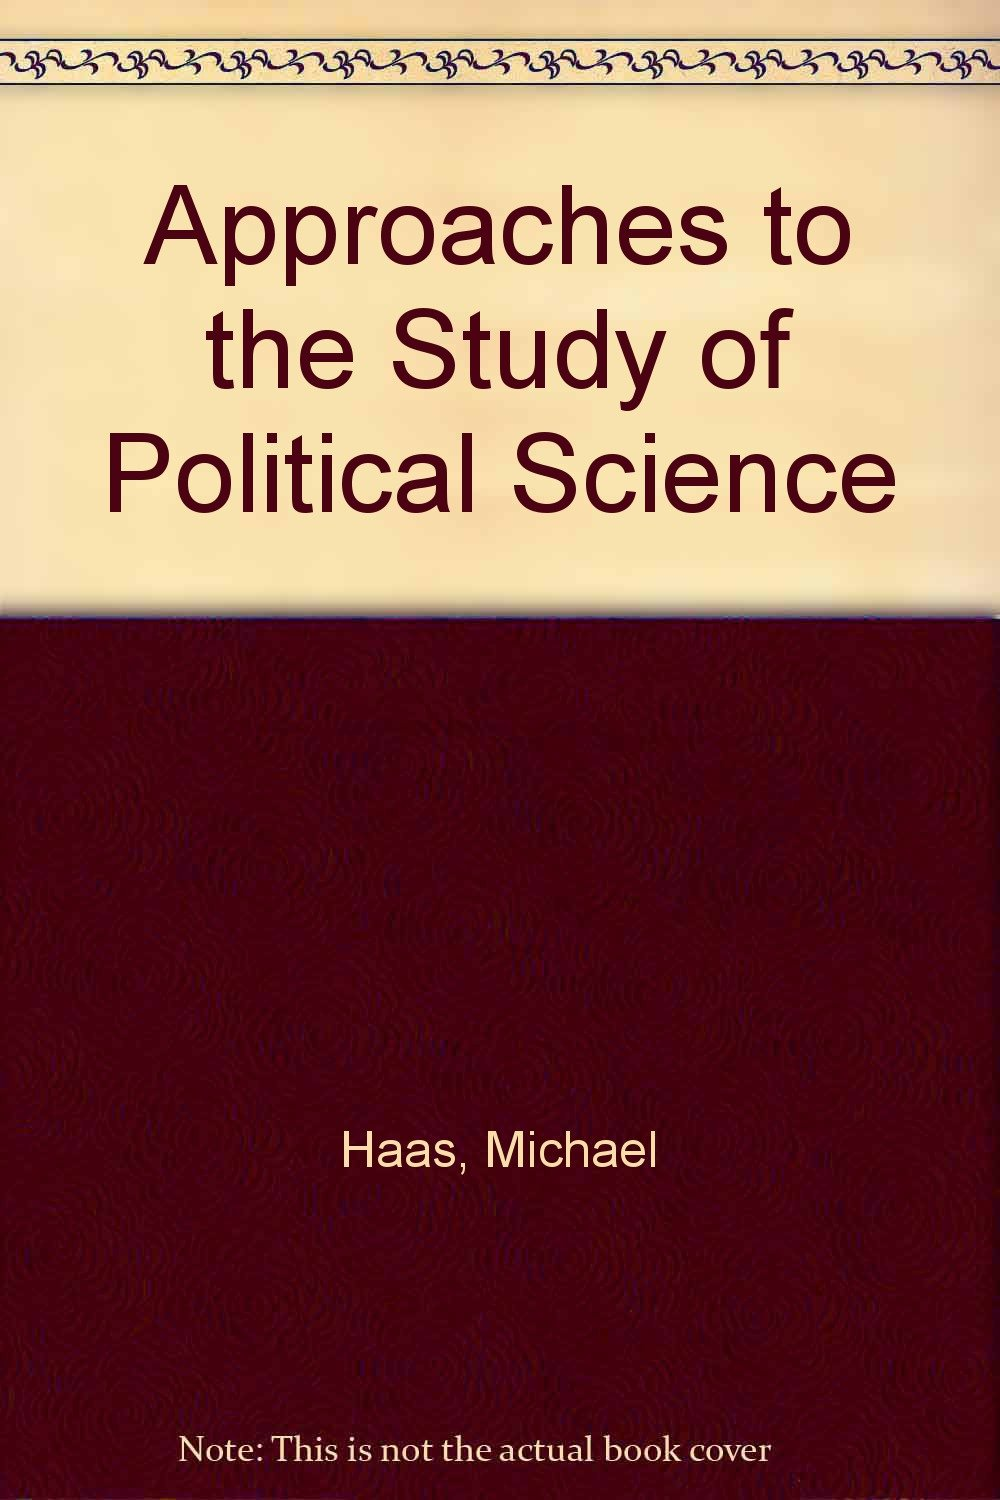 approaches to the study of political science